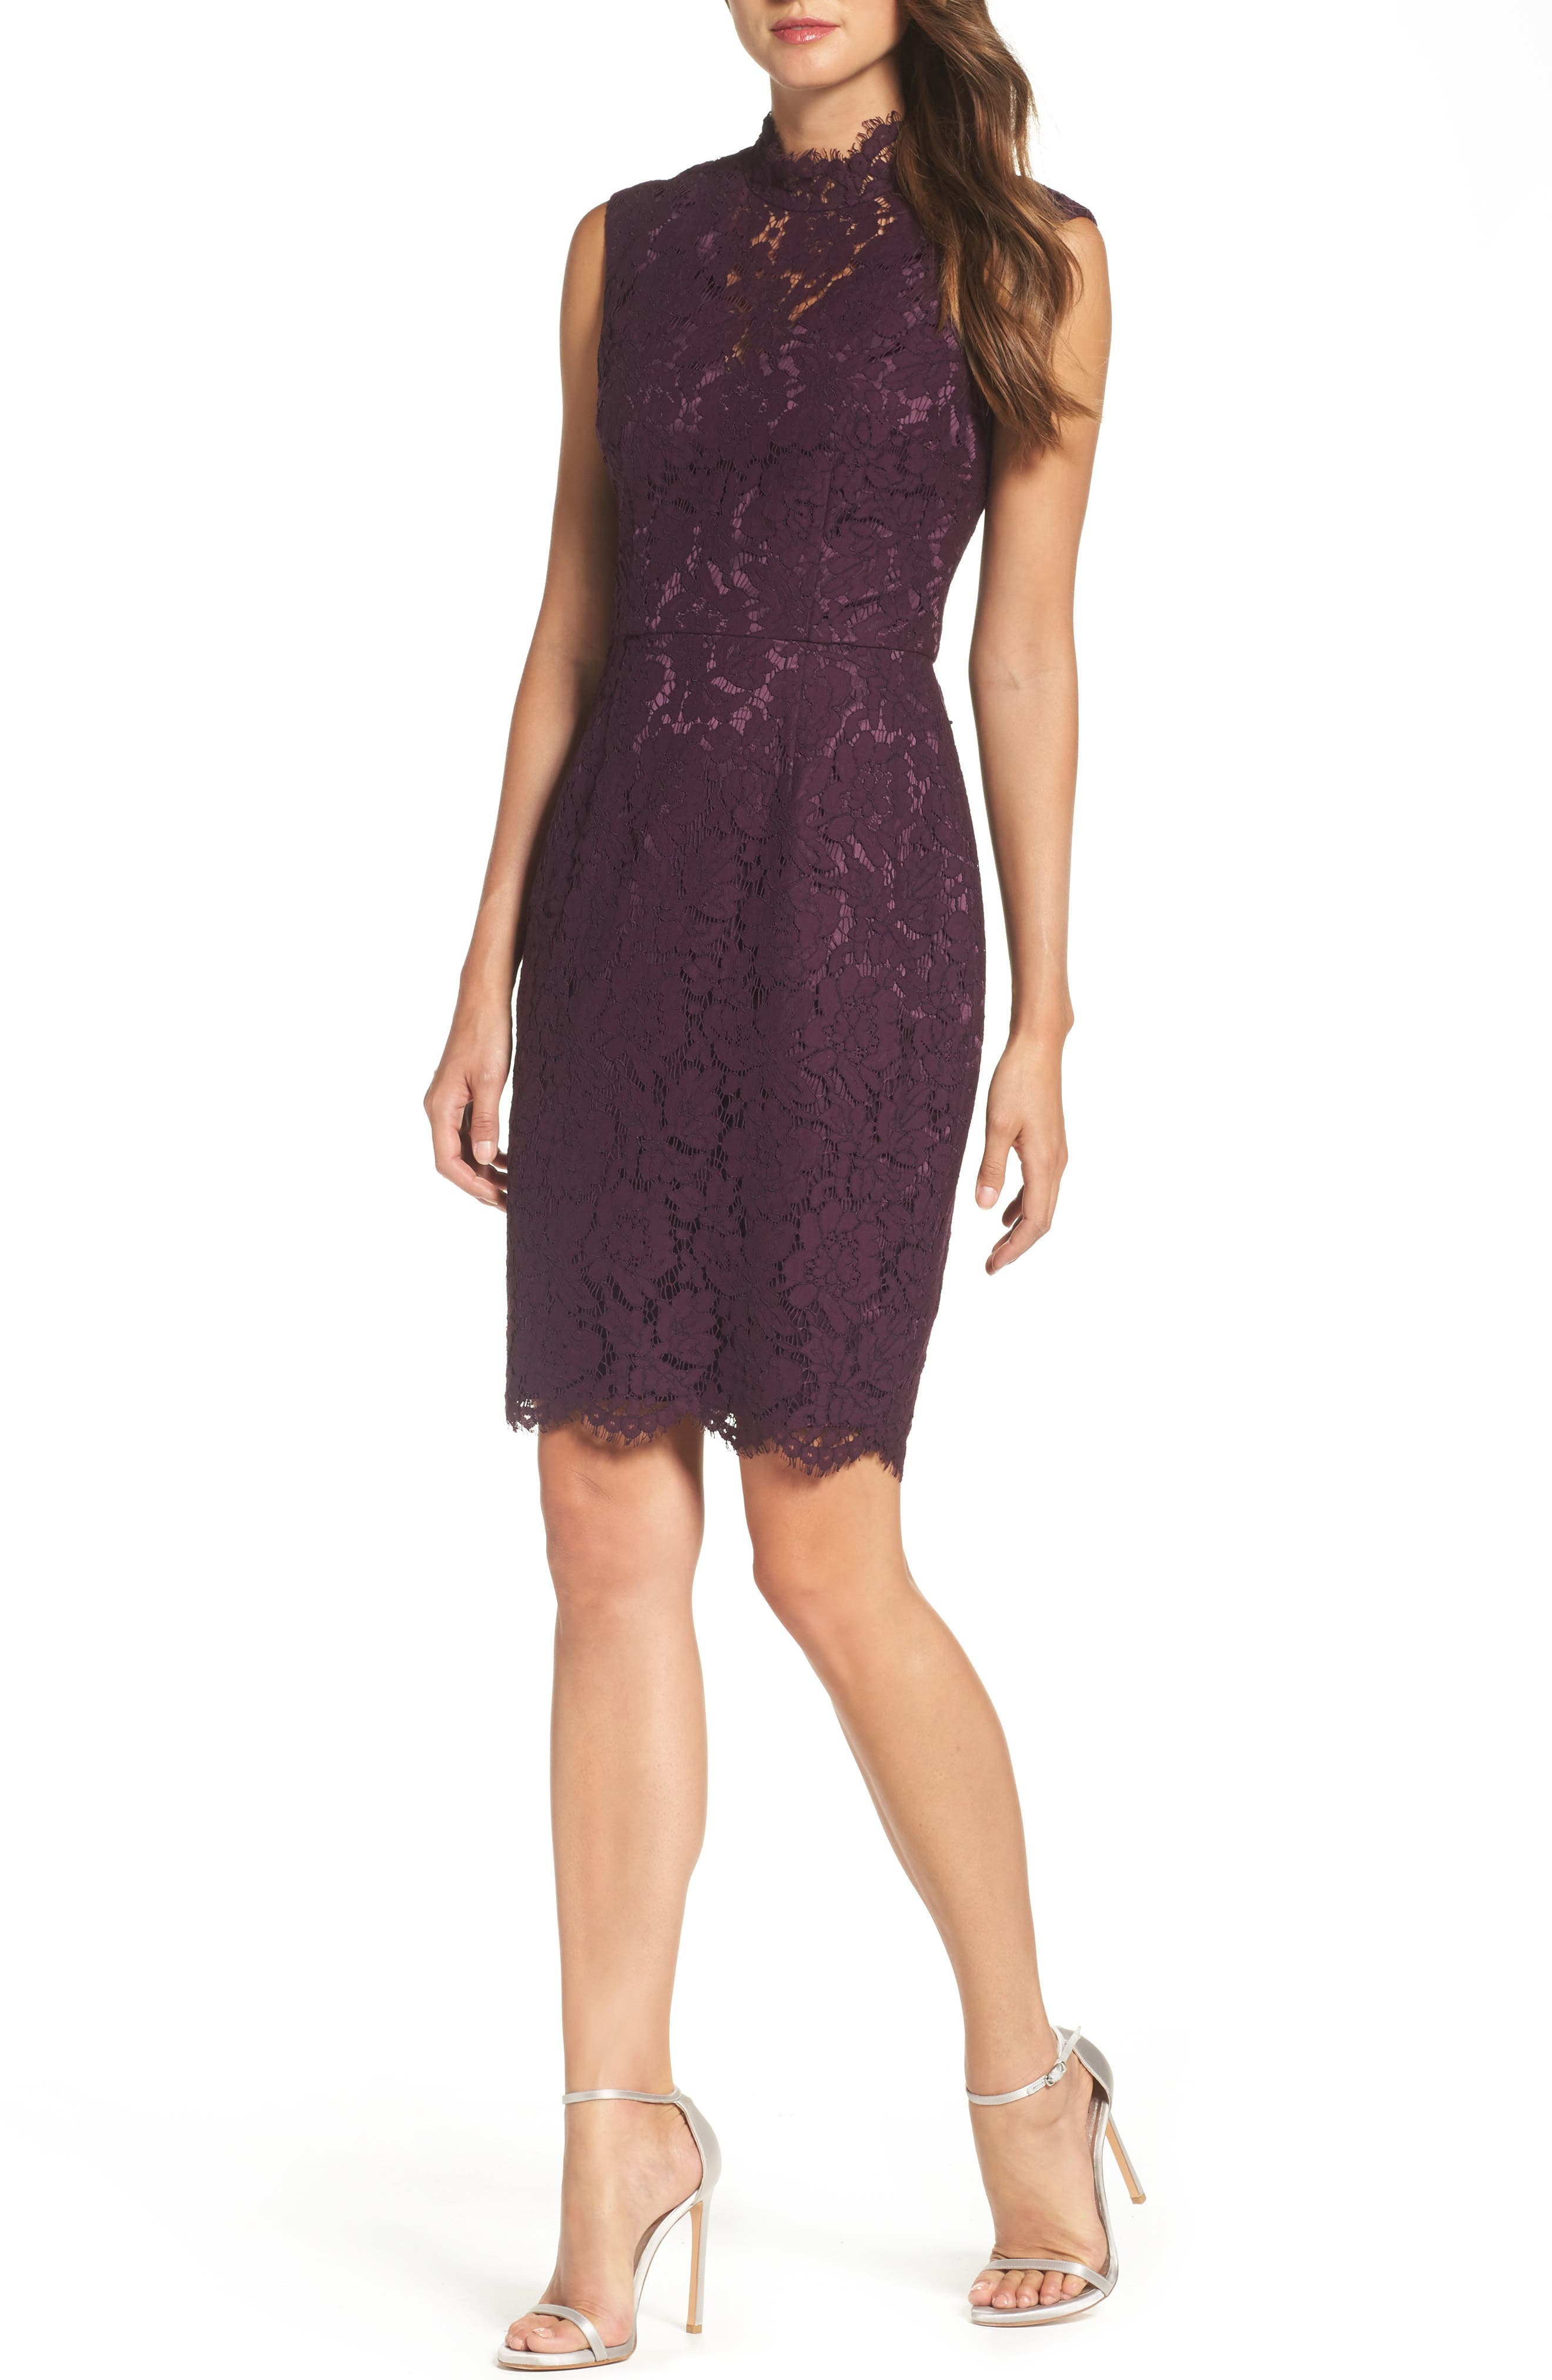 Alternate Image 1 Selected - Vince Camuto Open Back Lace Sheath Dress